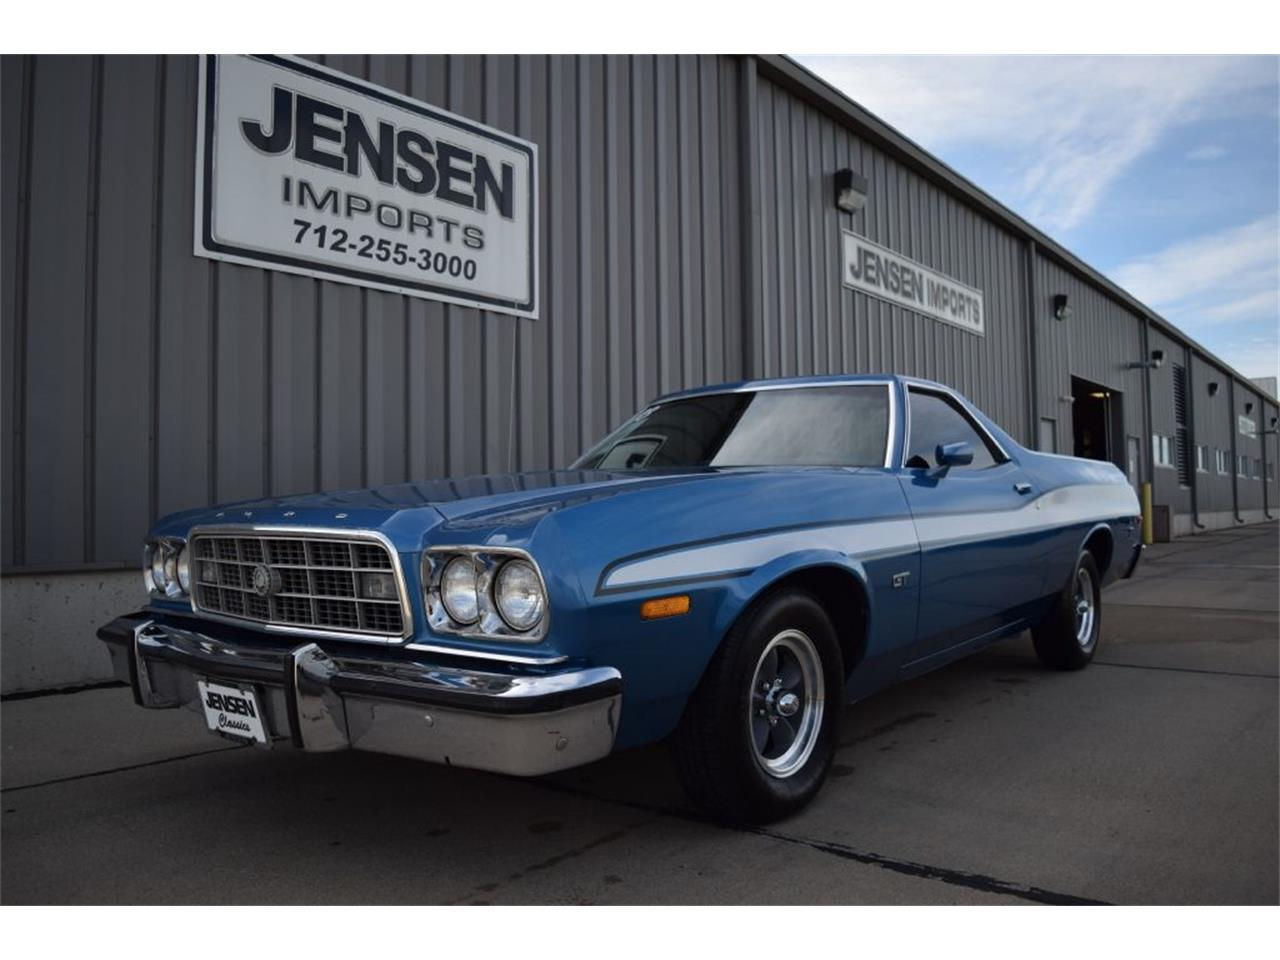 Large Picture of '73 Ford Ranchero - $17,650.00 Offered by Jensen Dealerships - MDYE